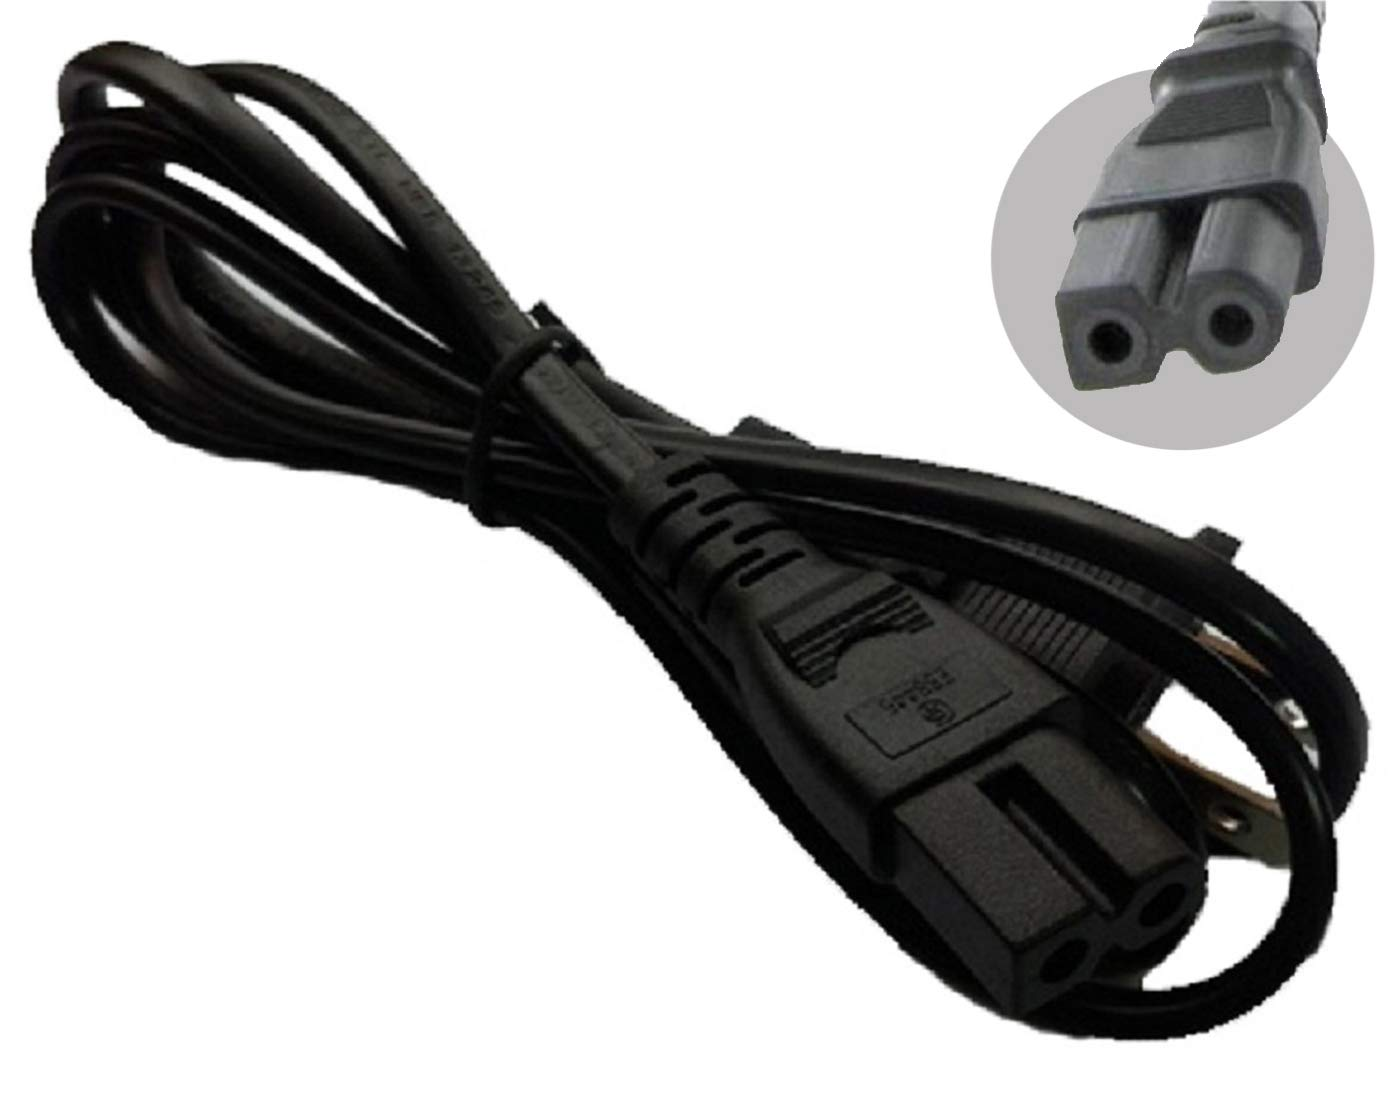 LOT OF 2 AC POWER CORD for Comcast Cable box Directv Dish DVR 6